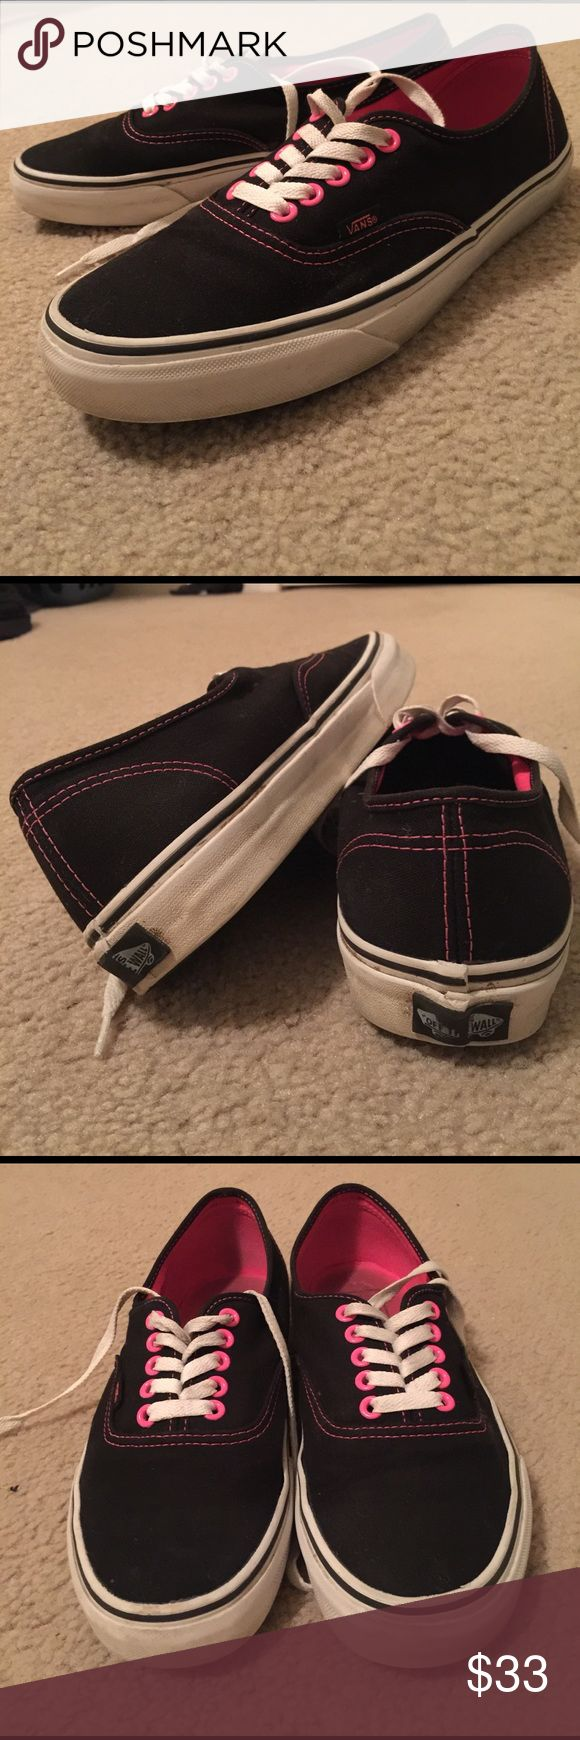 Vans authentic black and pink Black and pink vans. Women's size 9, only worn a few times🌸🌸 Vans Shoes Sneakers